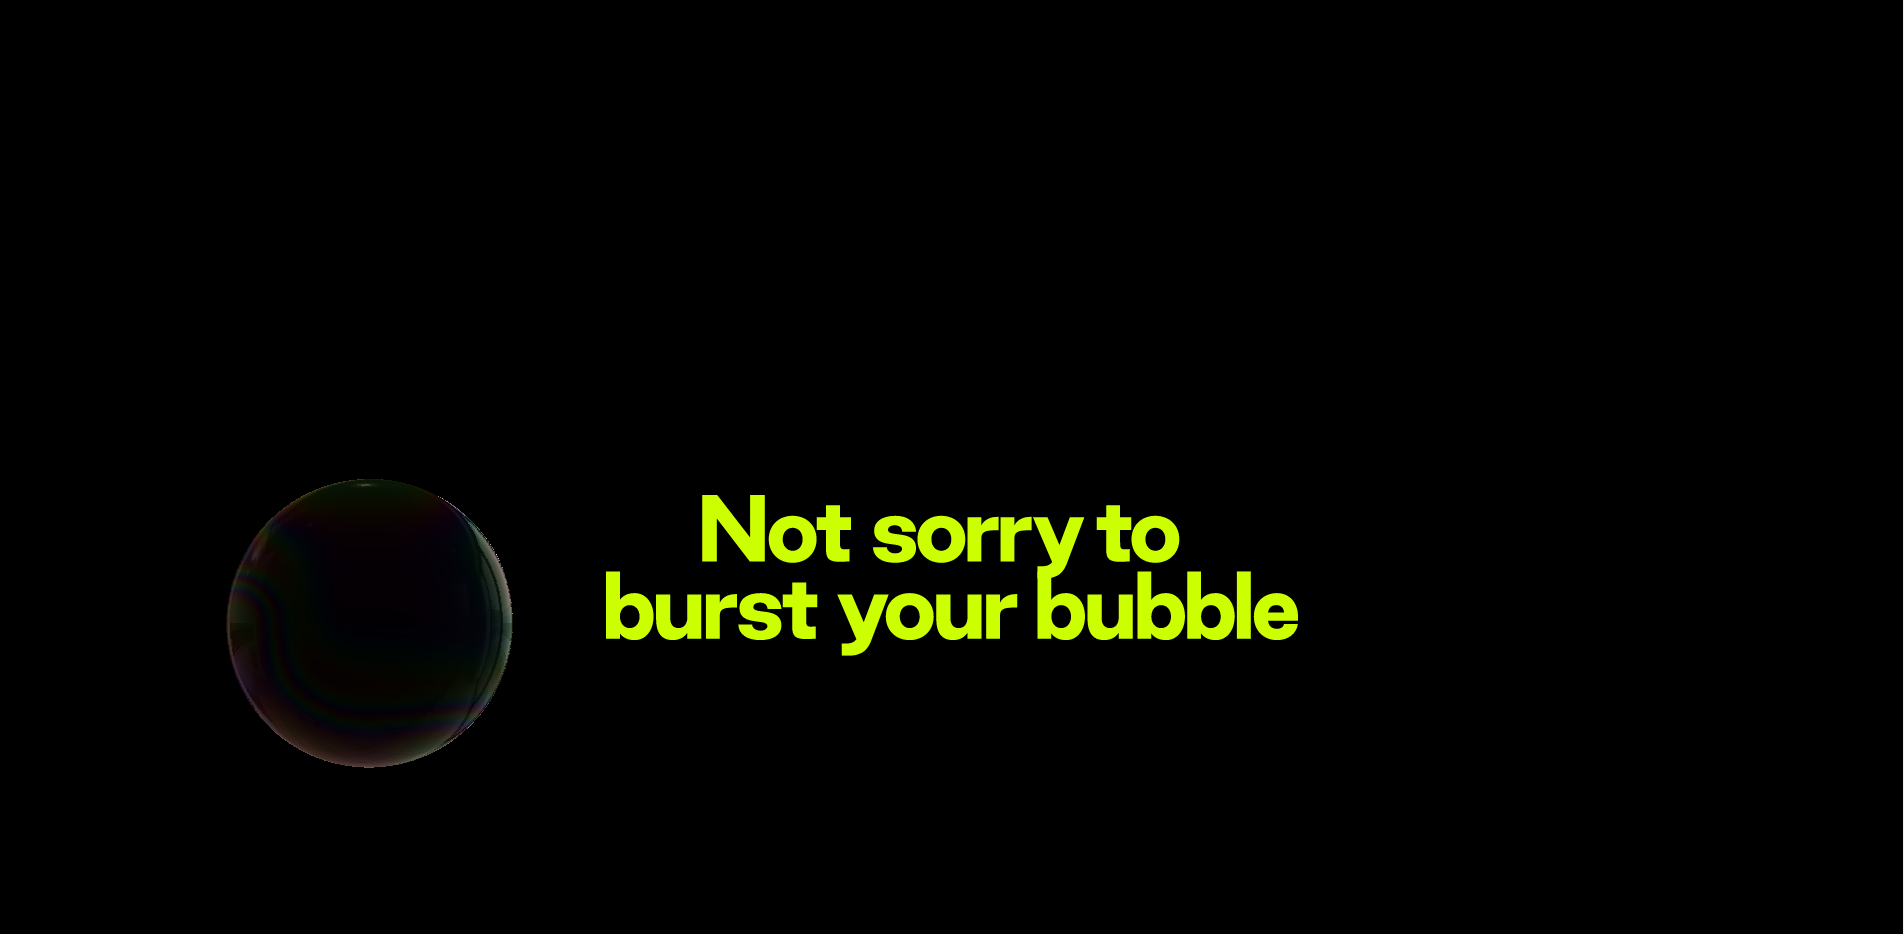 Rouserlab - Not sorry to burst your bubble!